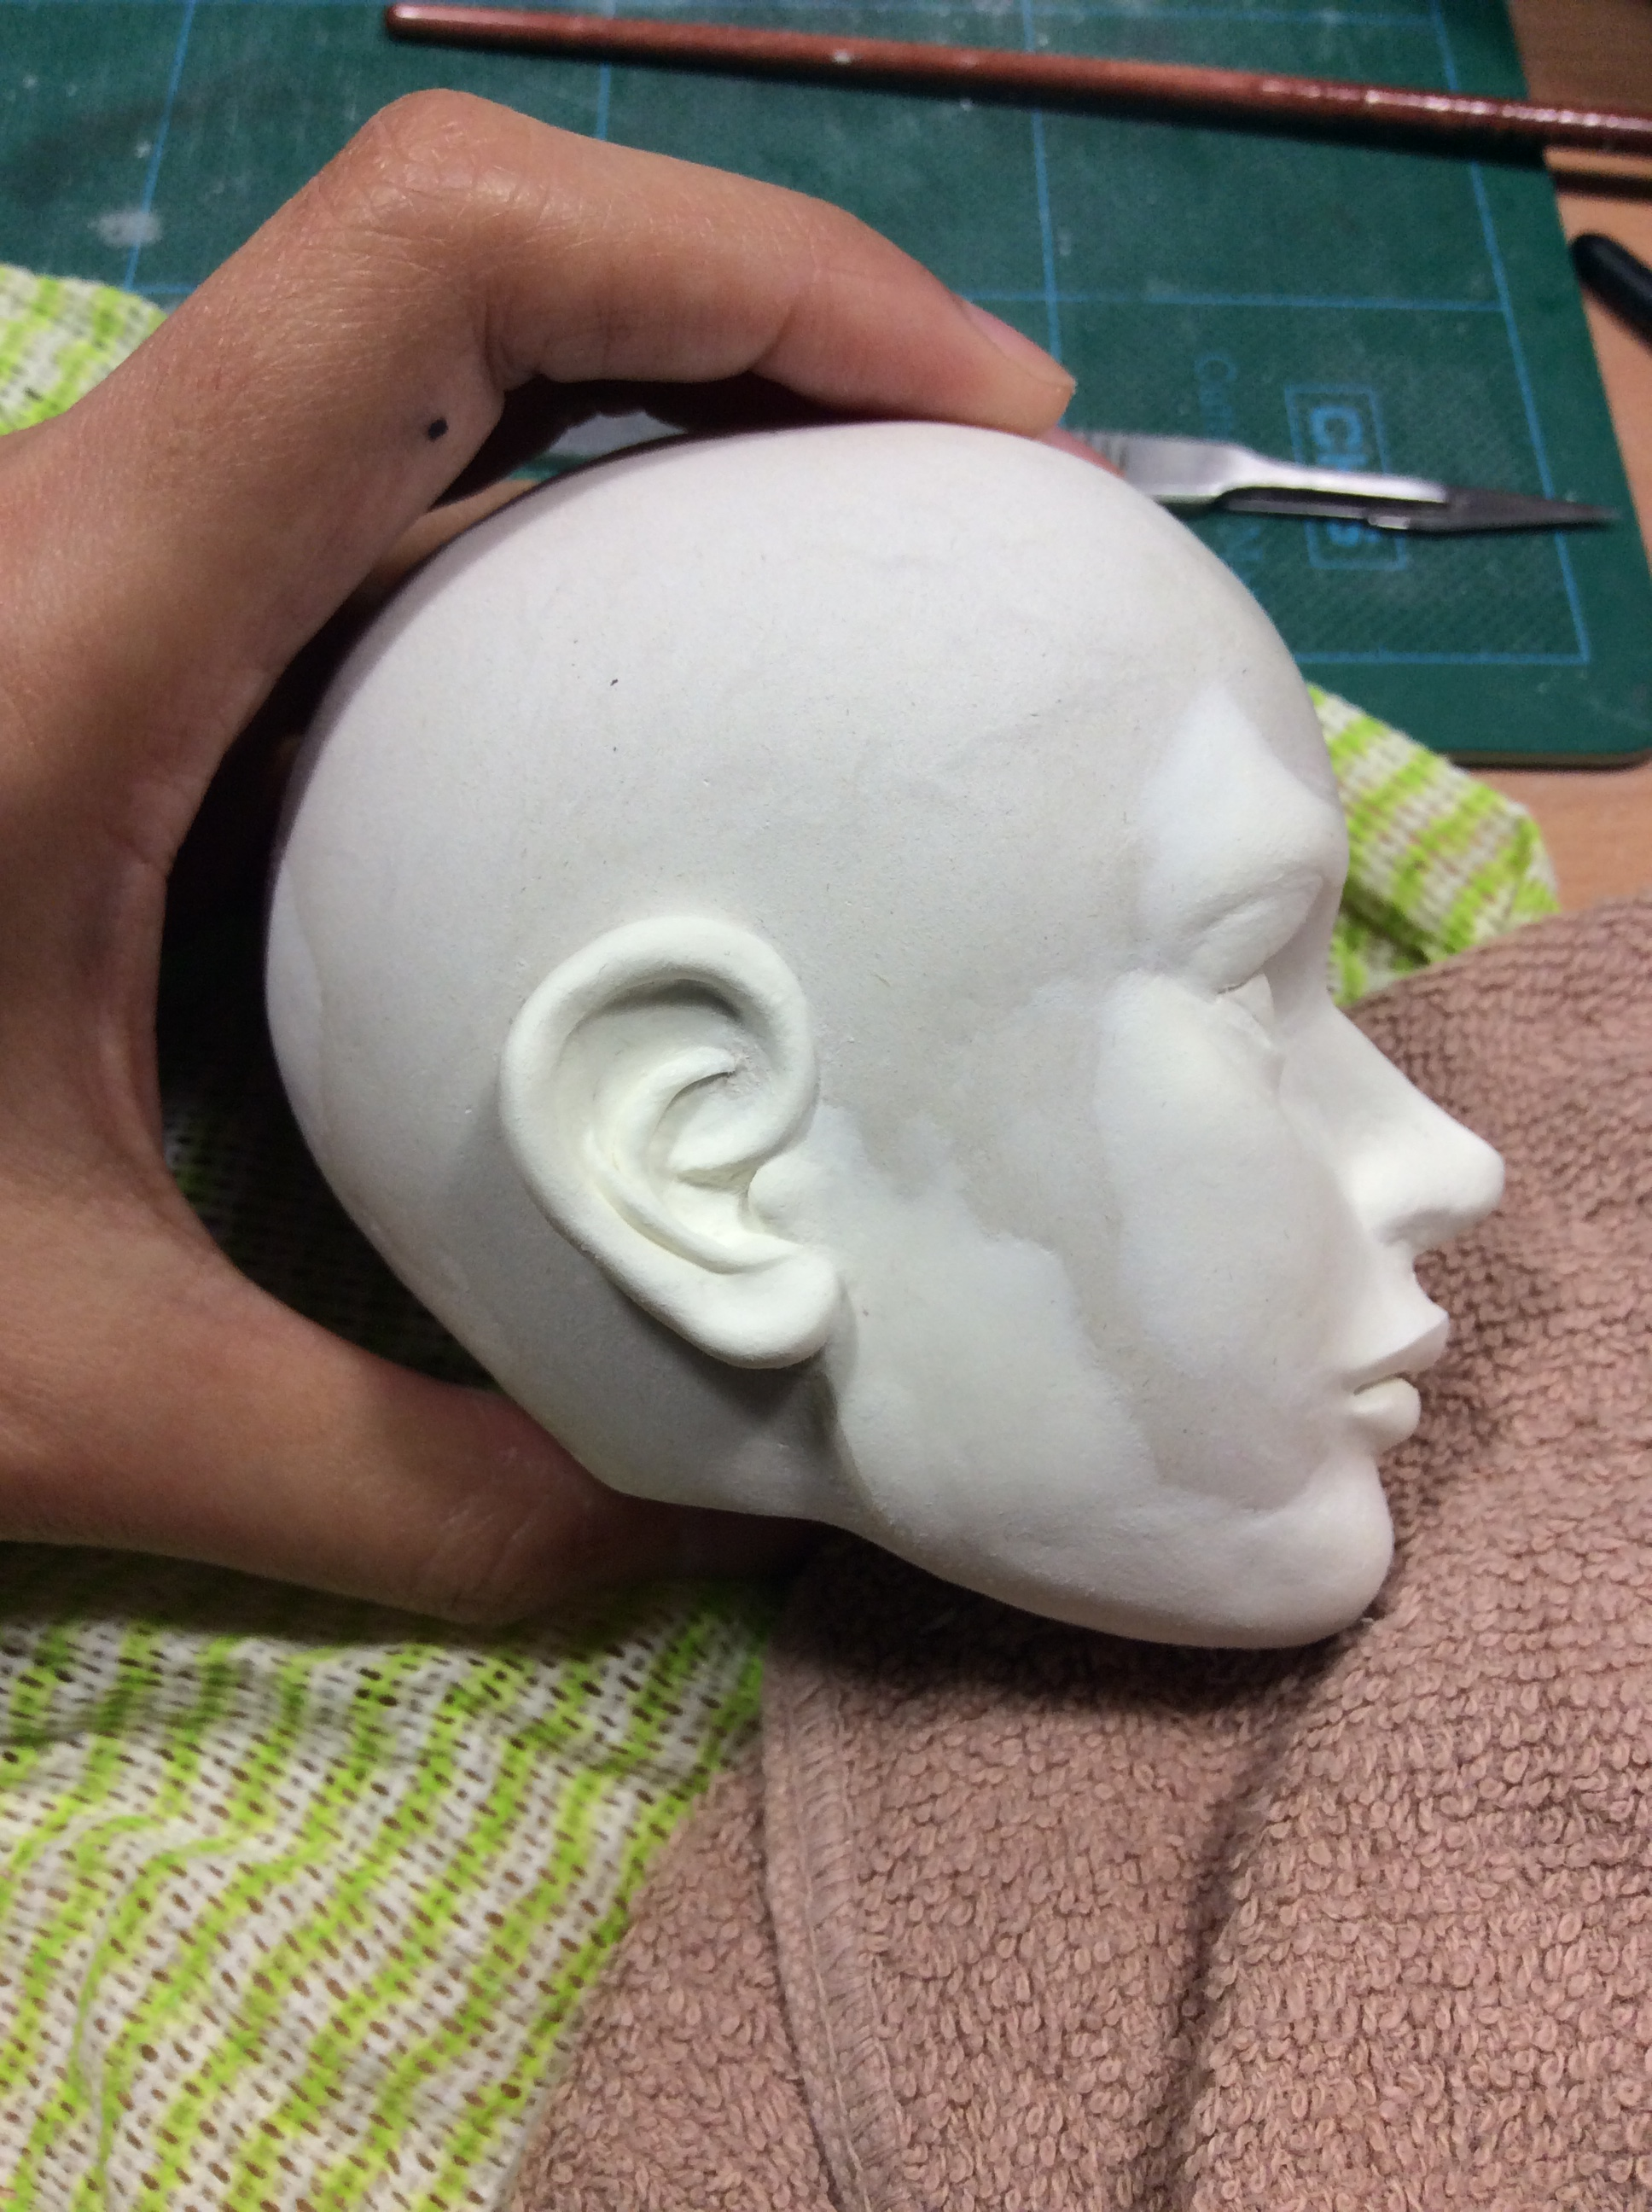 jemse---my-first-doll-head-making-progress-diary-part-3_31602561203_o